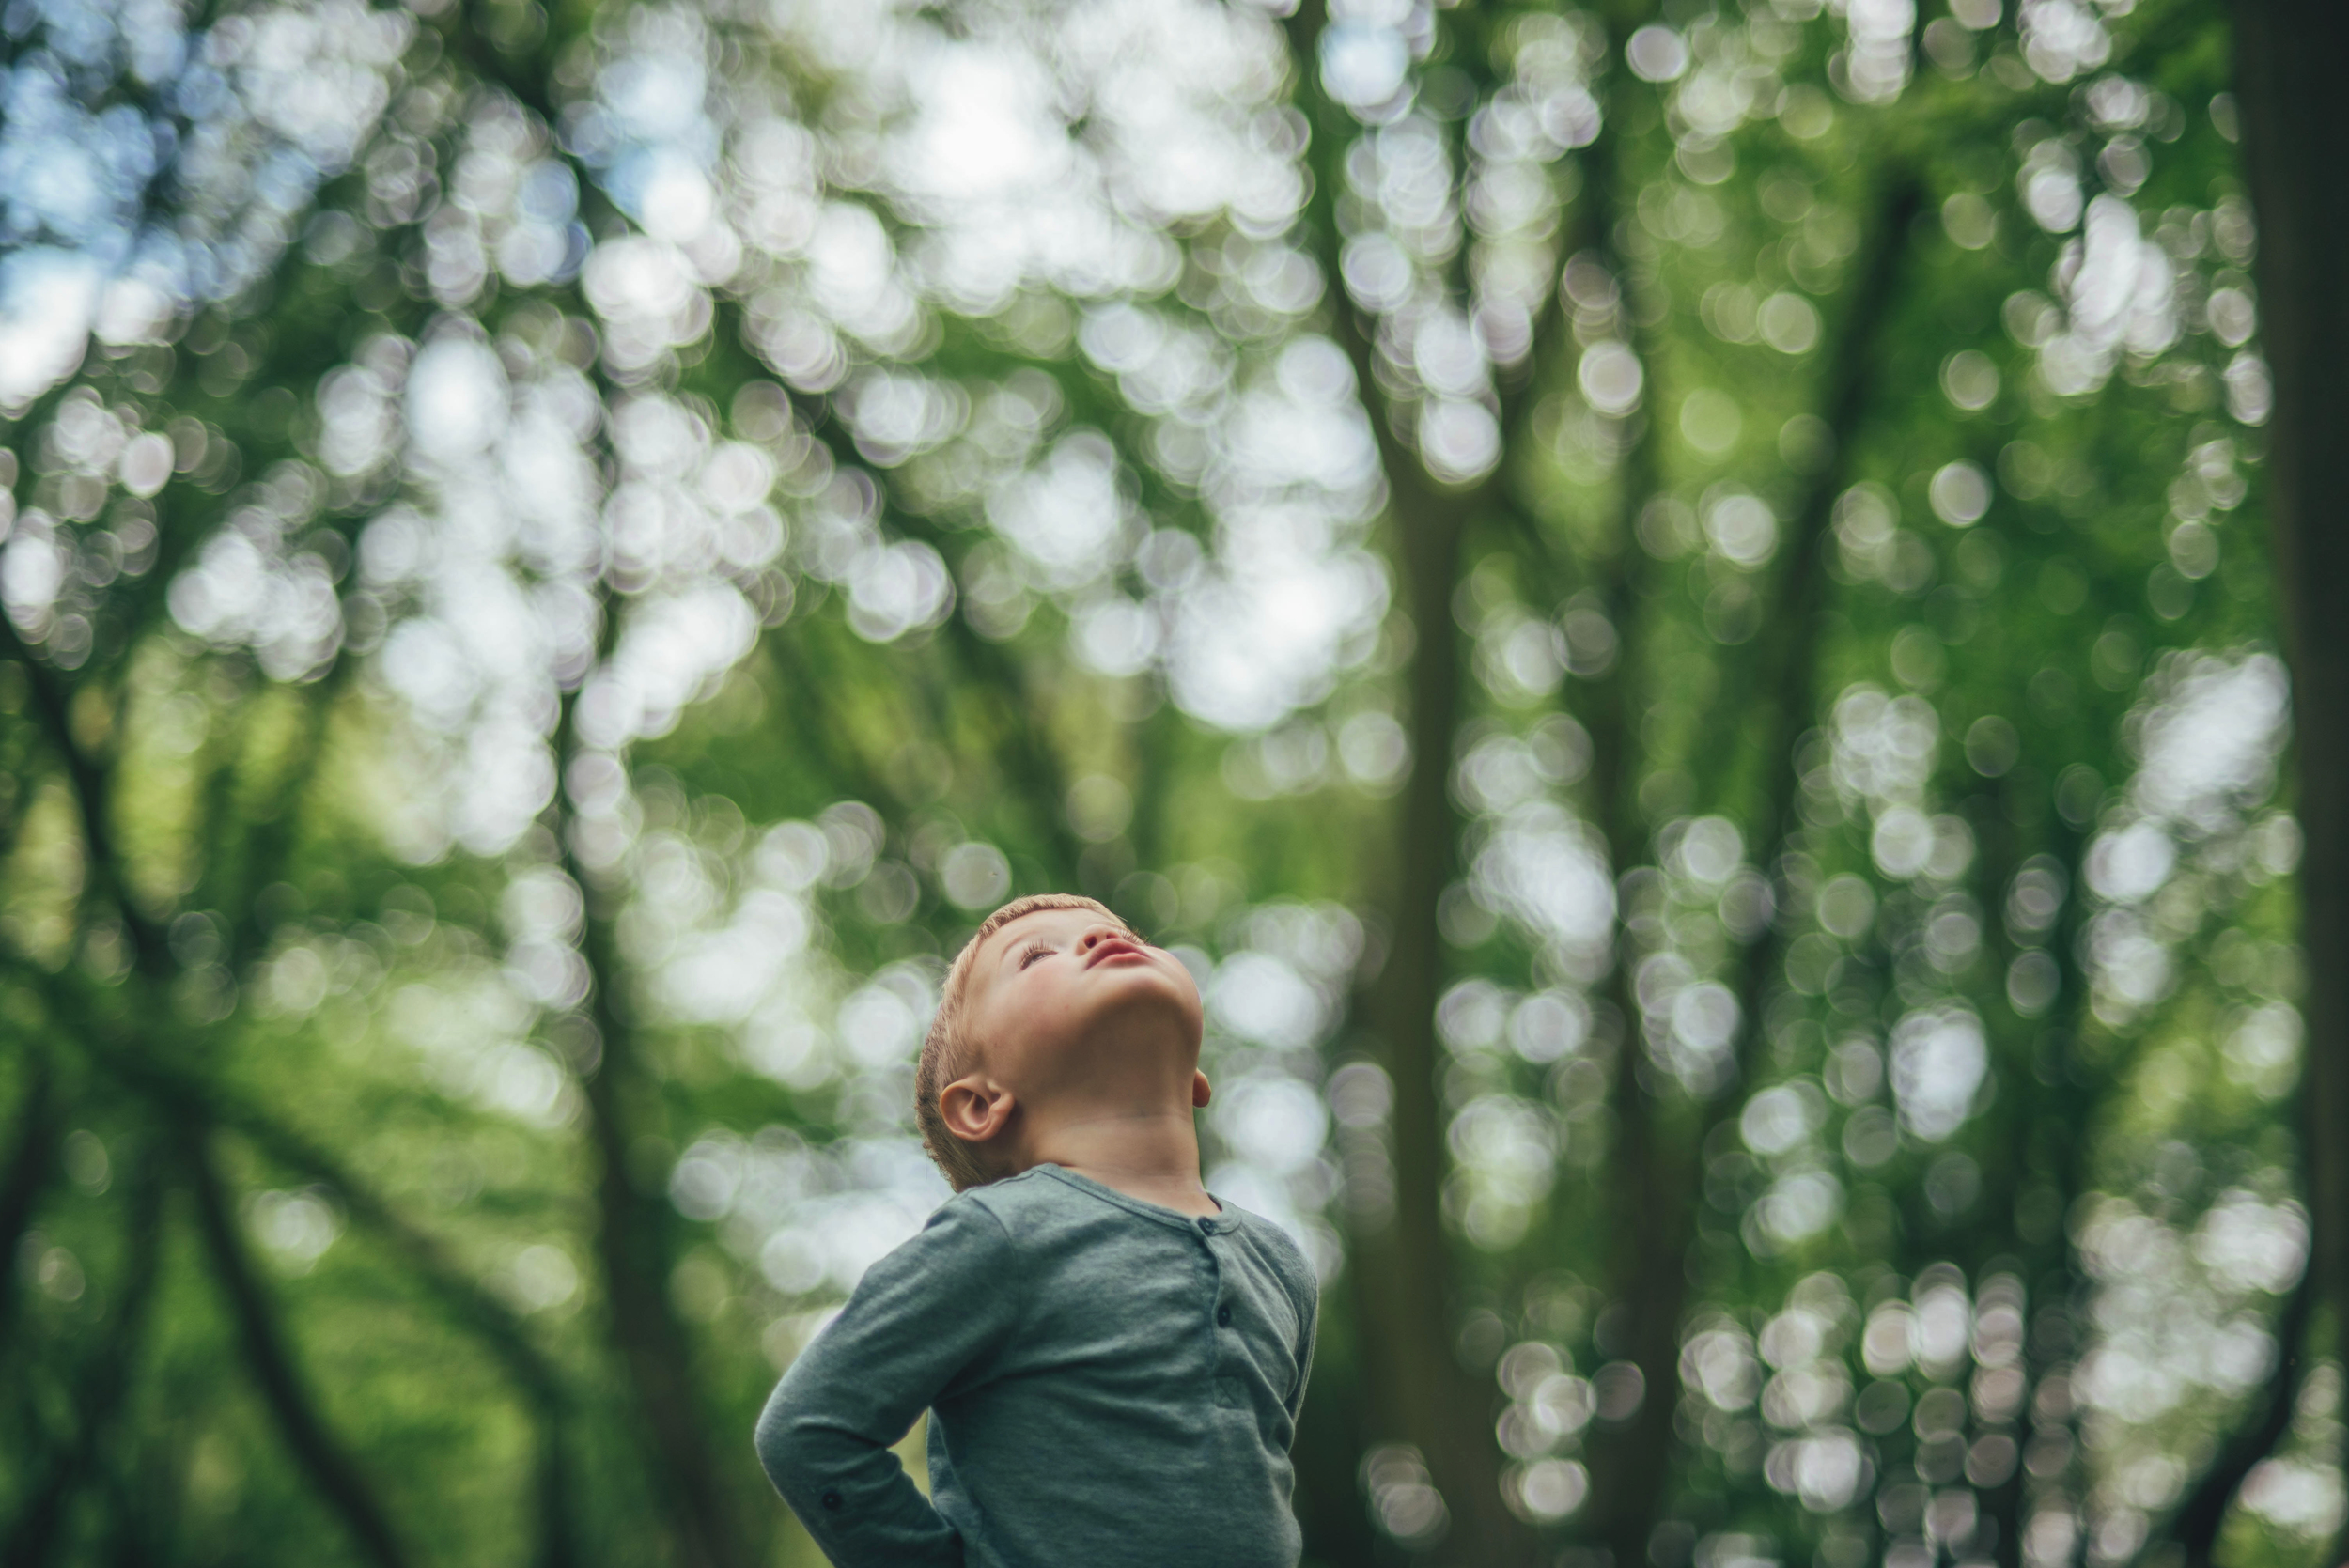 Little boy looks up to sky in Wood Essex UK Documentary Portrait and Lifestyle Photographer